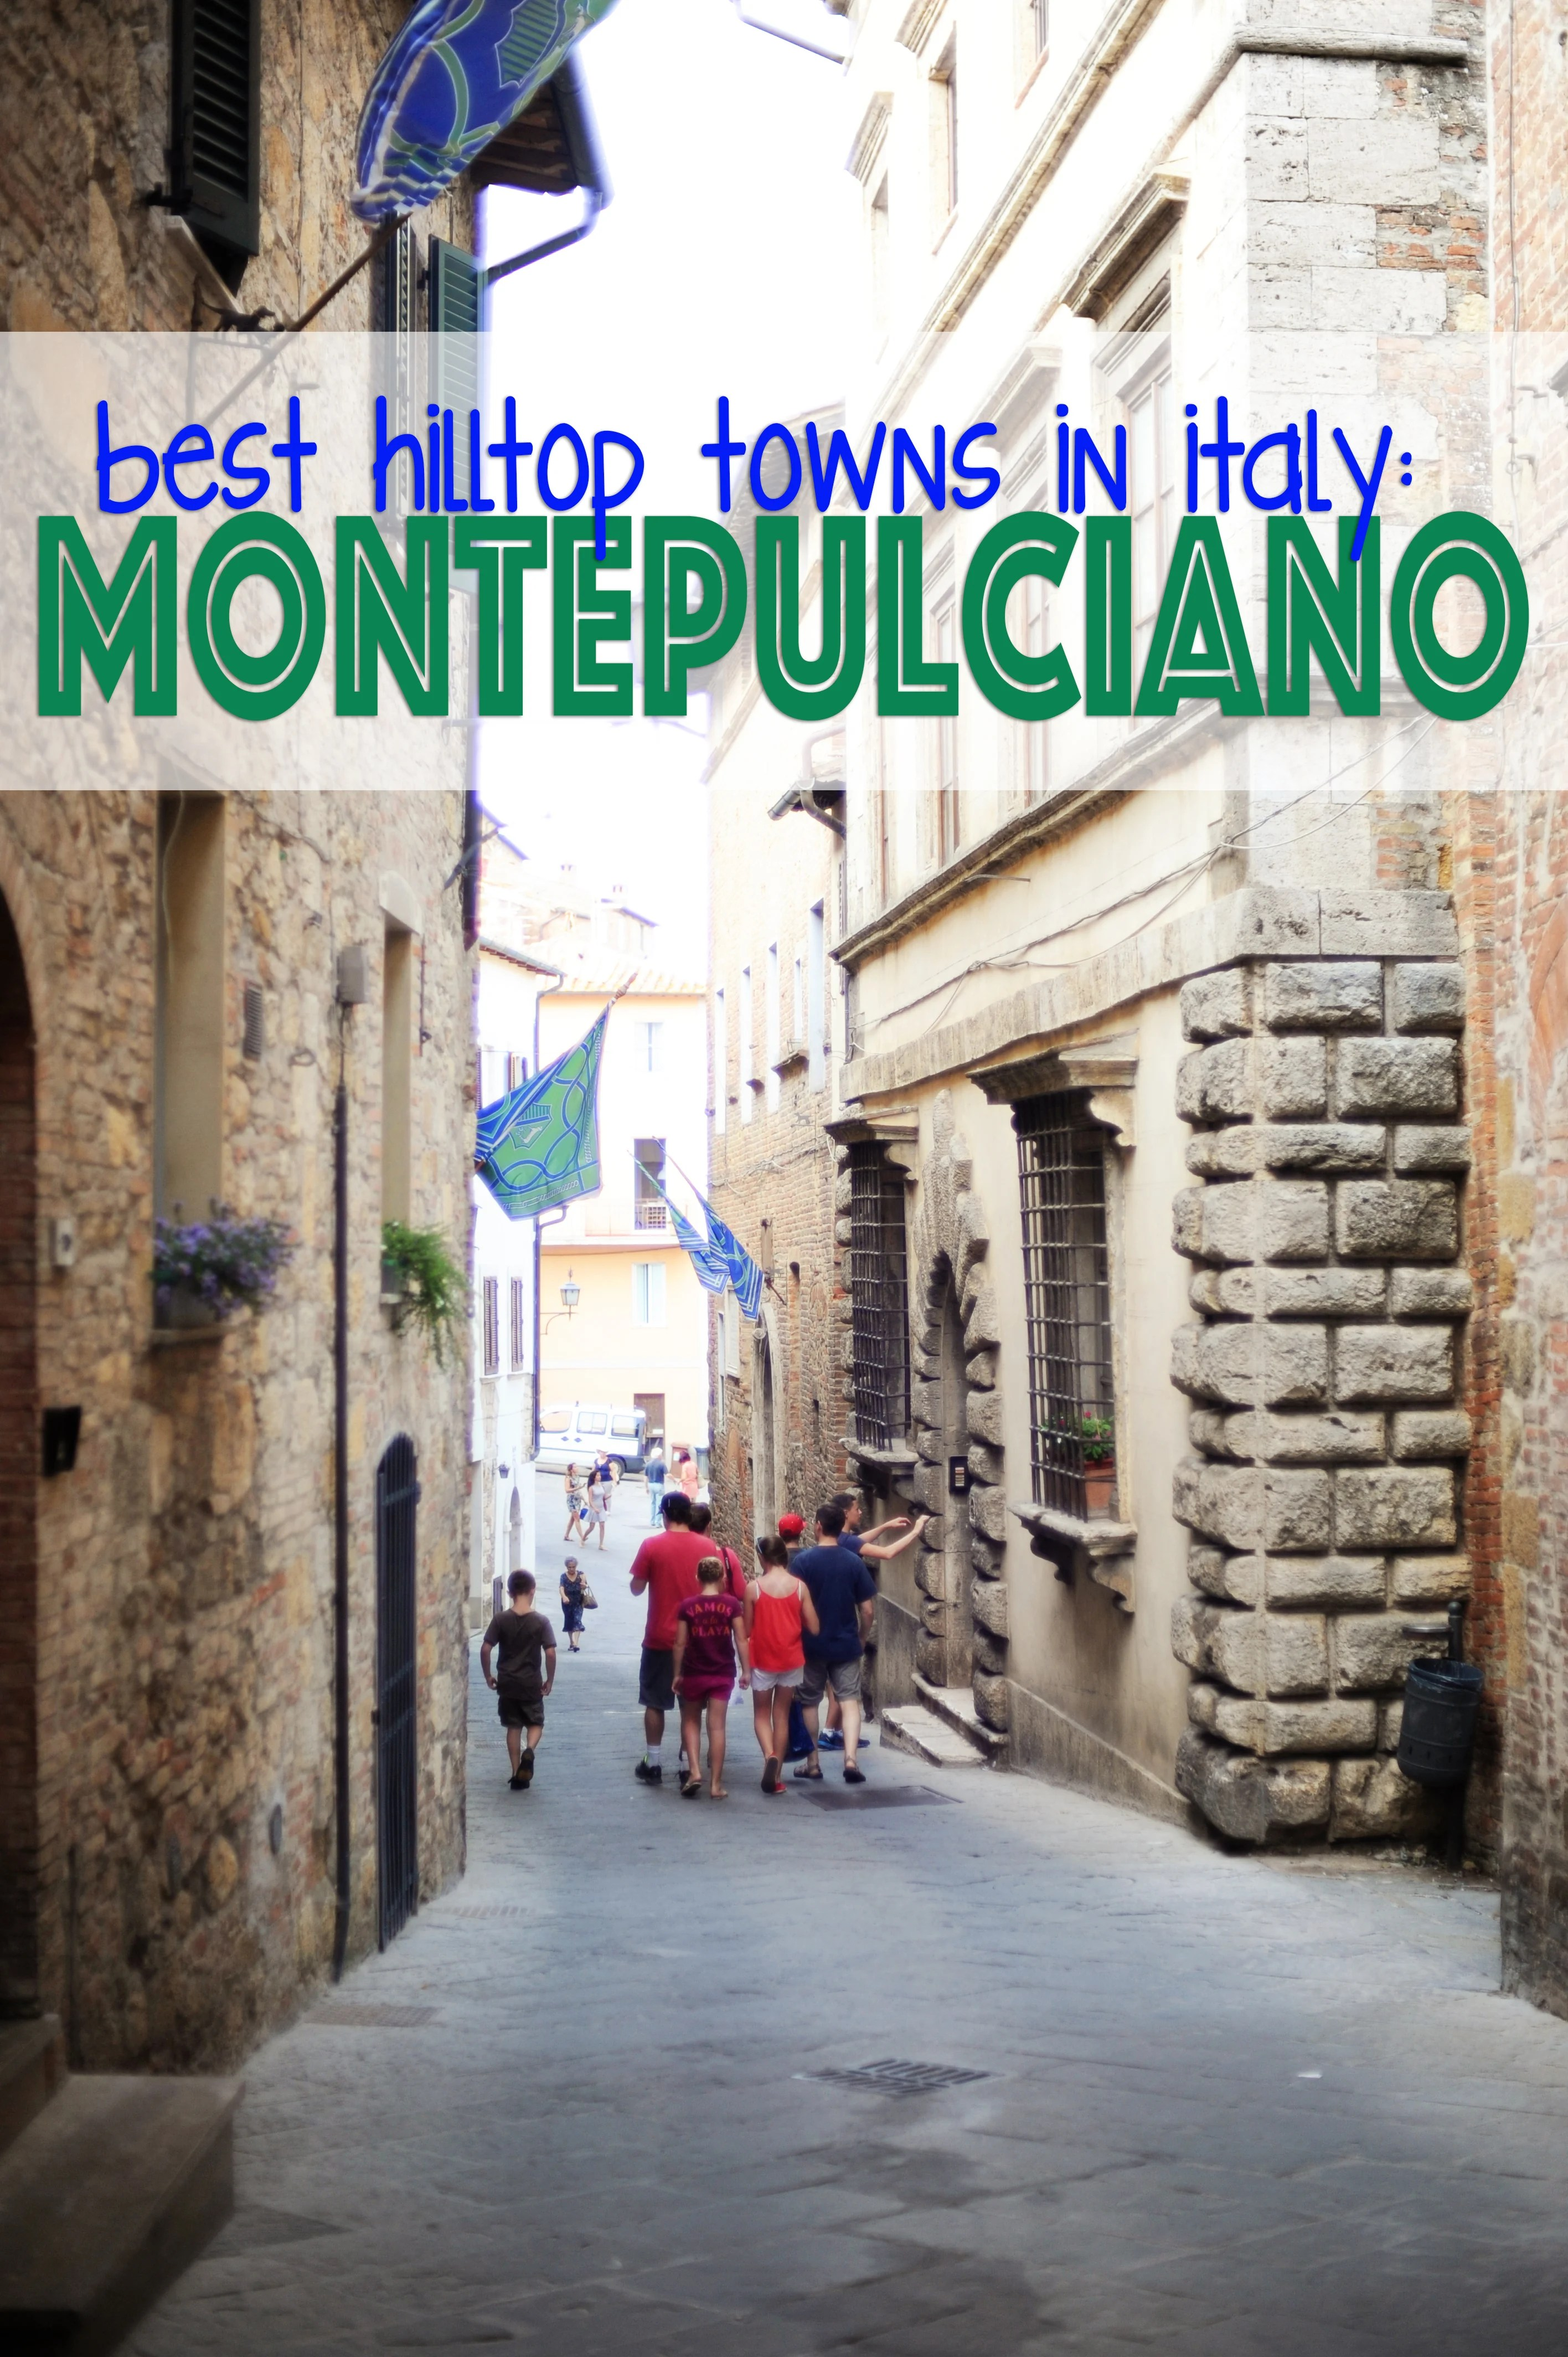 Montepulciano medieval towns in Italy